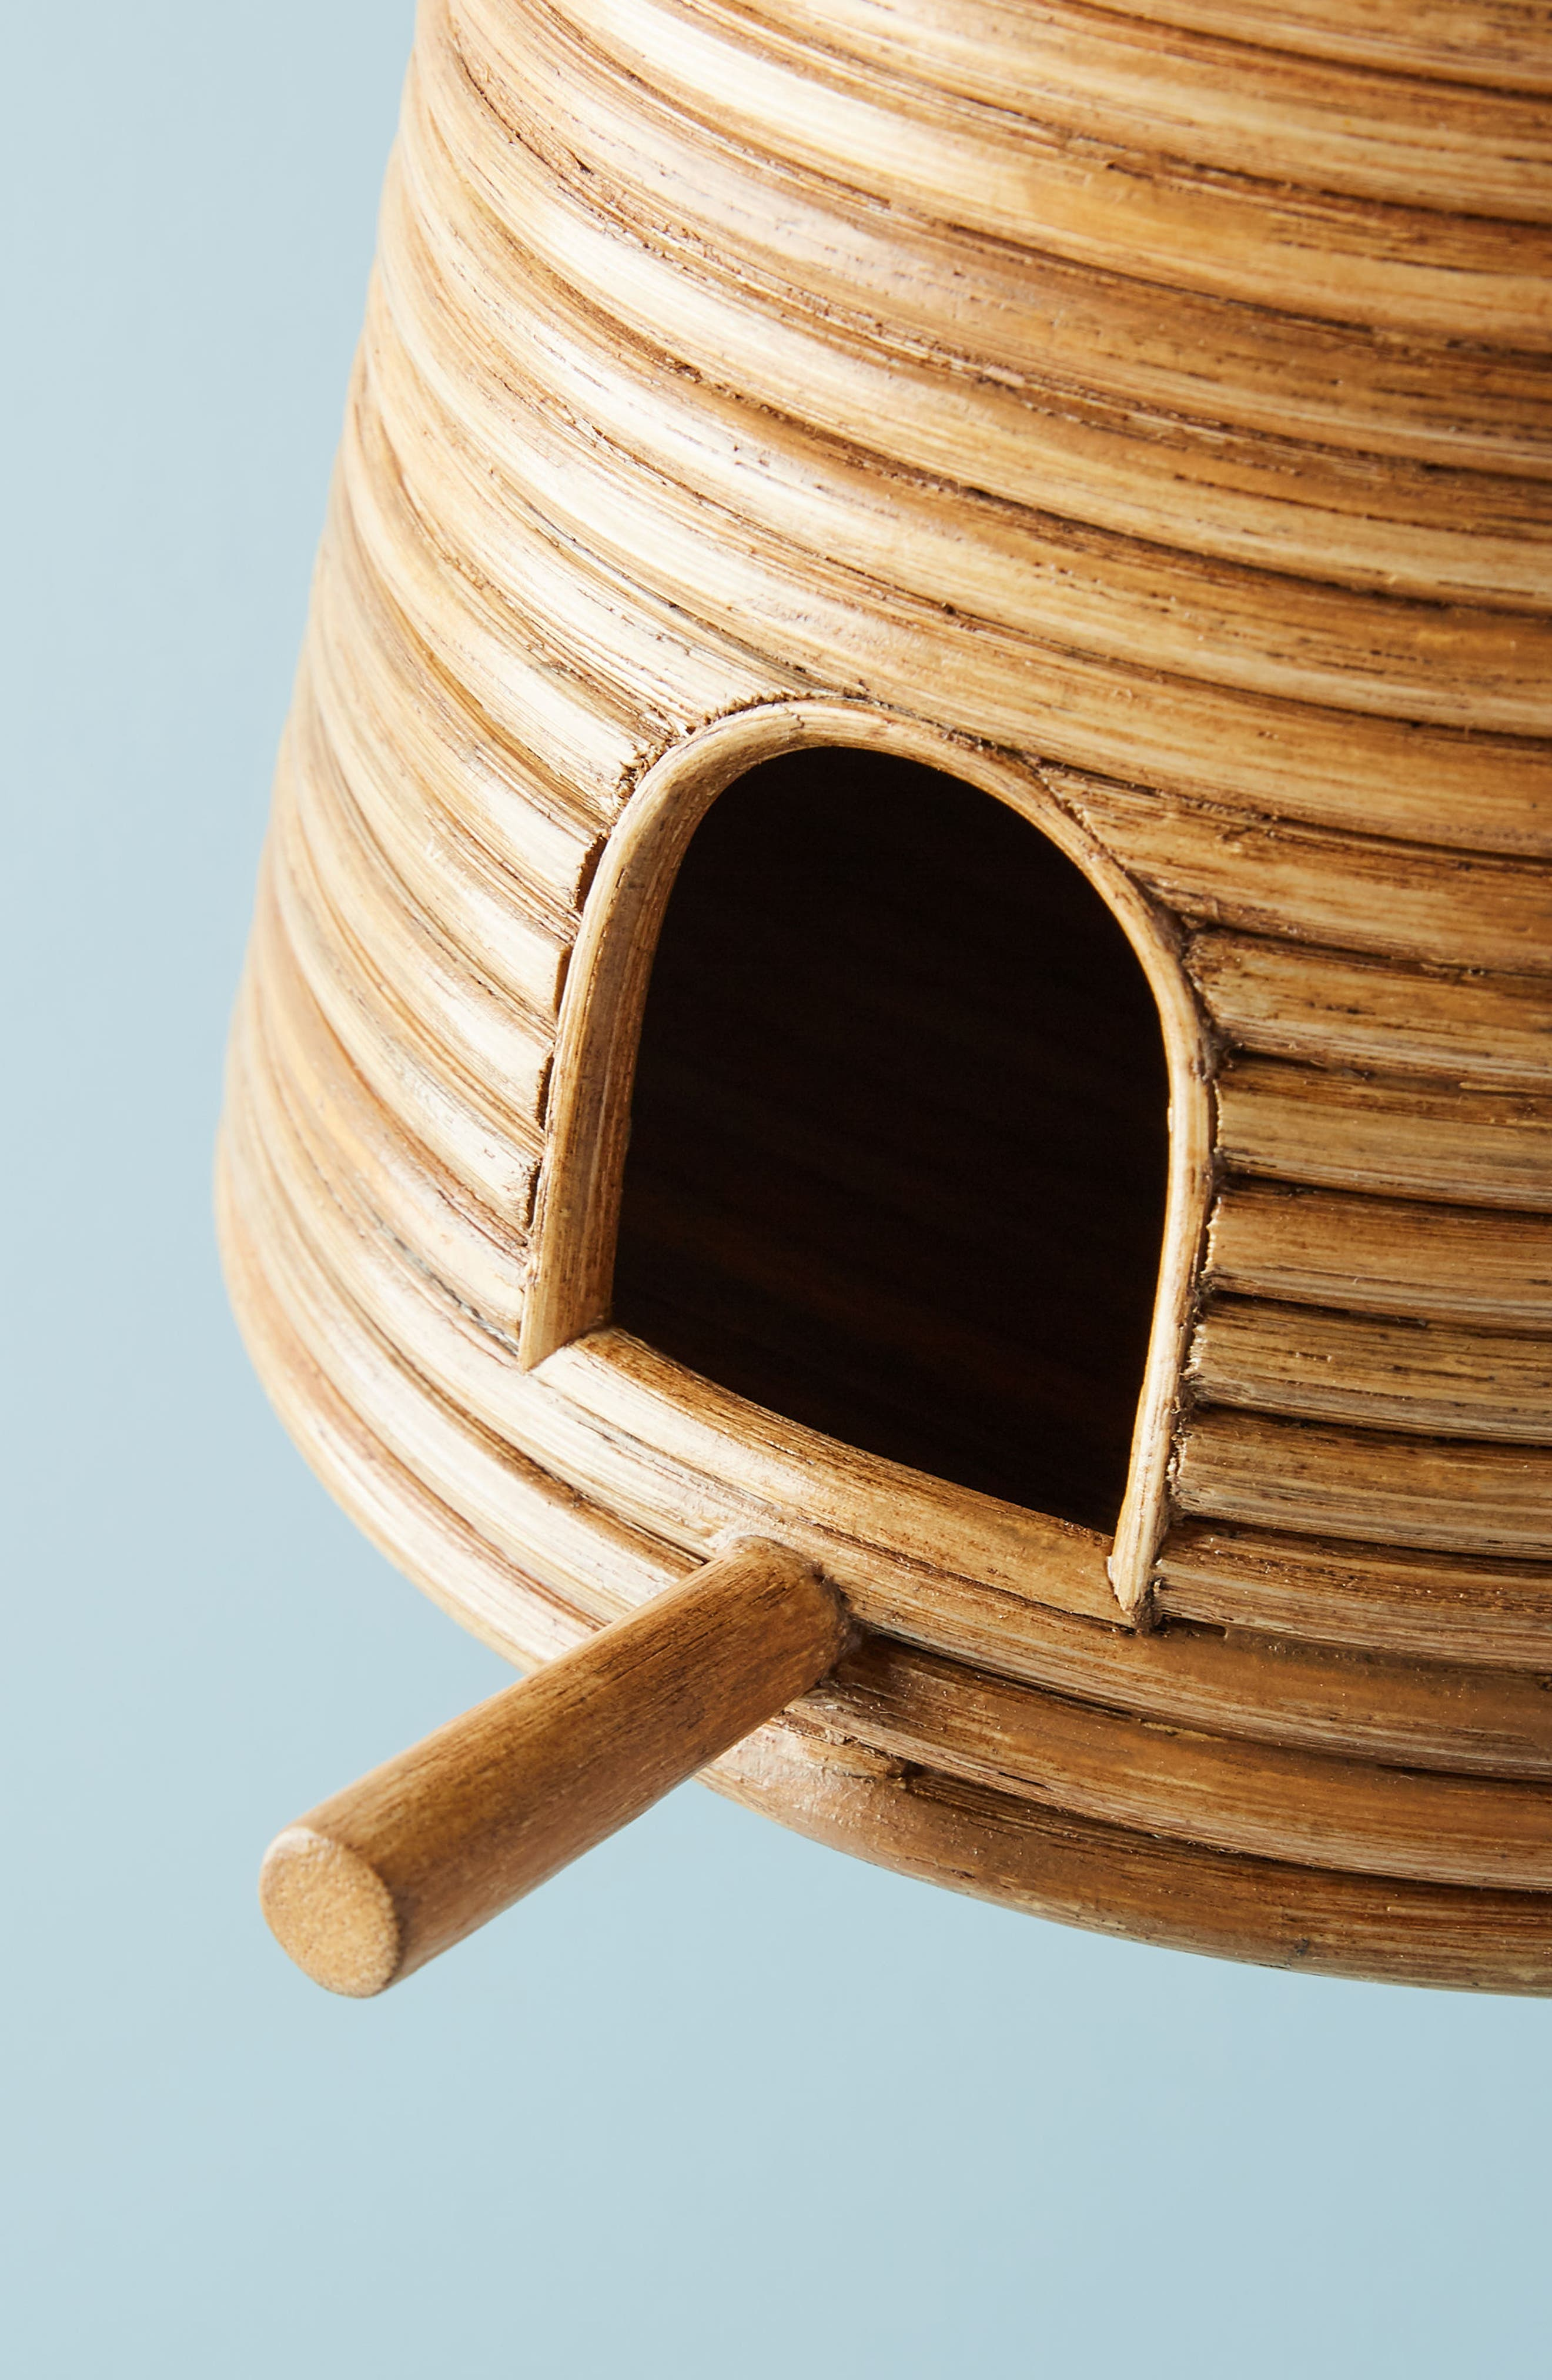 Beehive Birdhouse,                             Alternate thumbnail 2, color,                             218